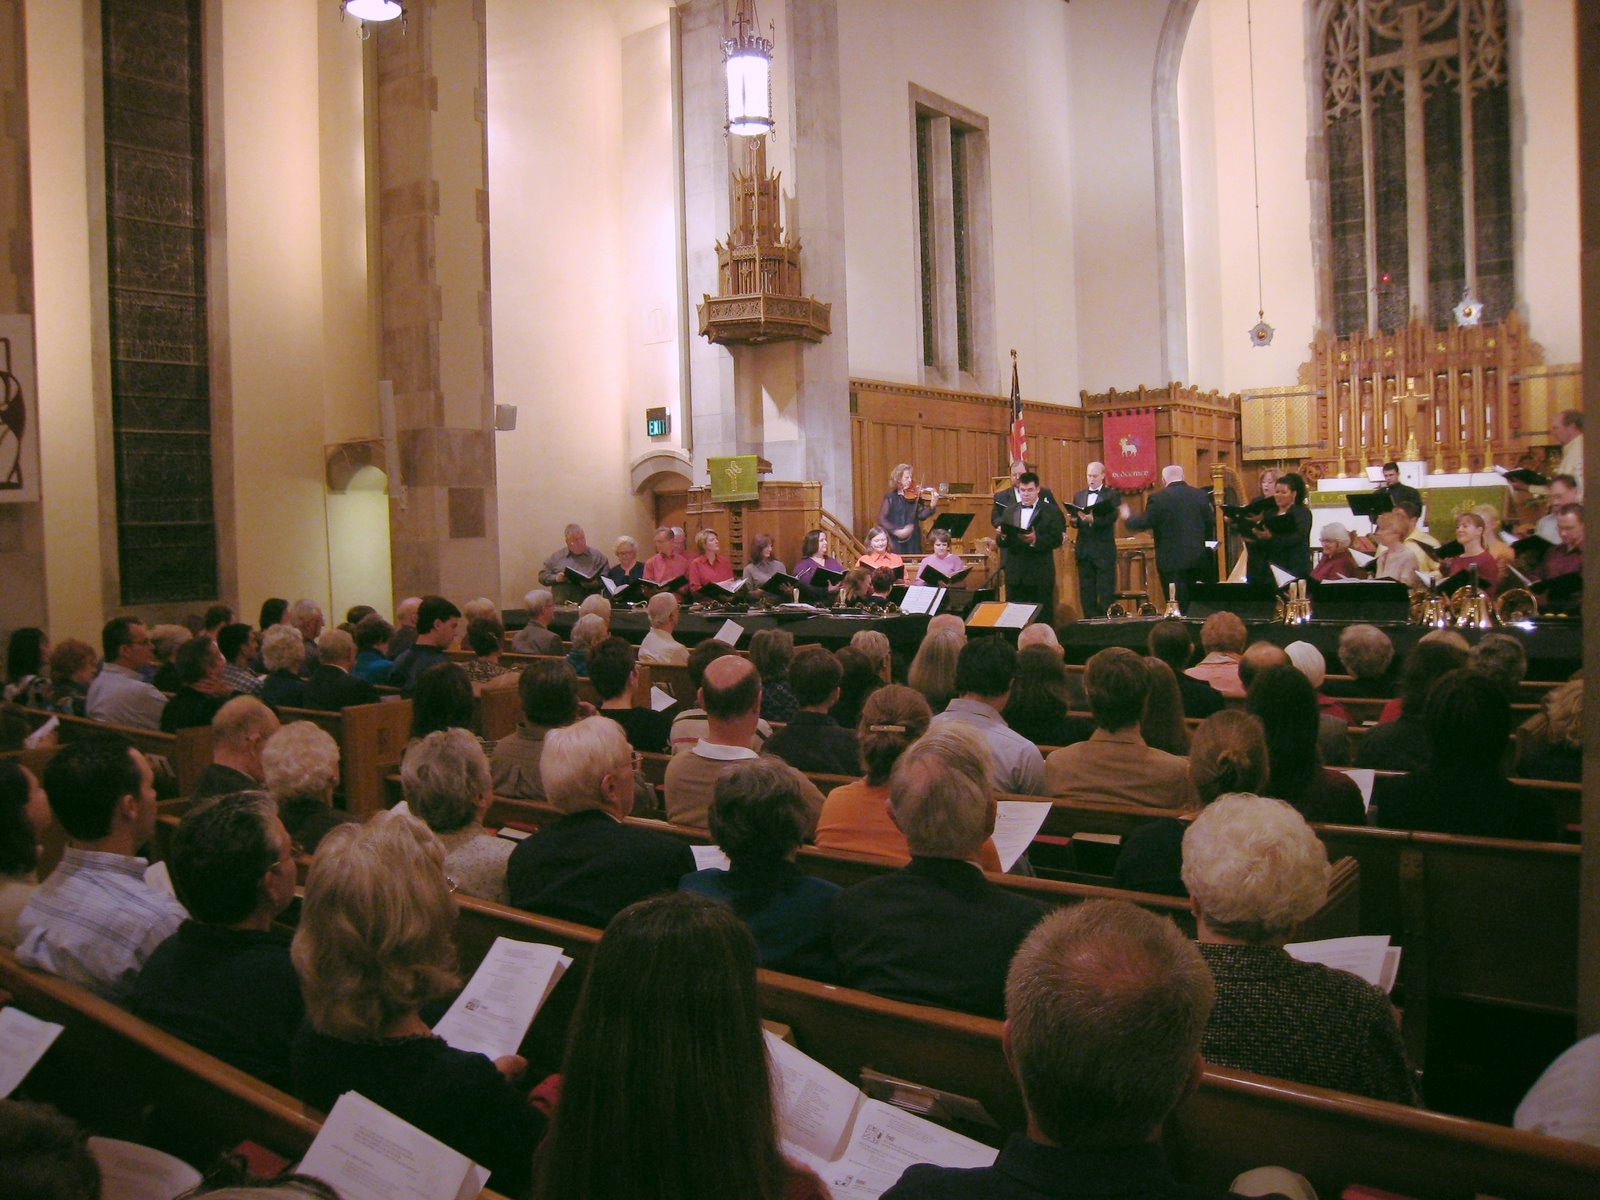 Redeemer Lutheran Church's sanctuary is the concert venue.